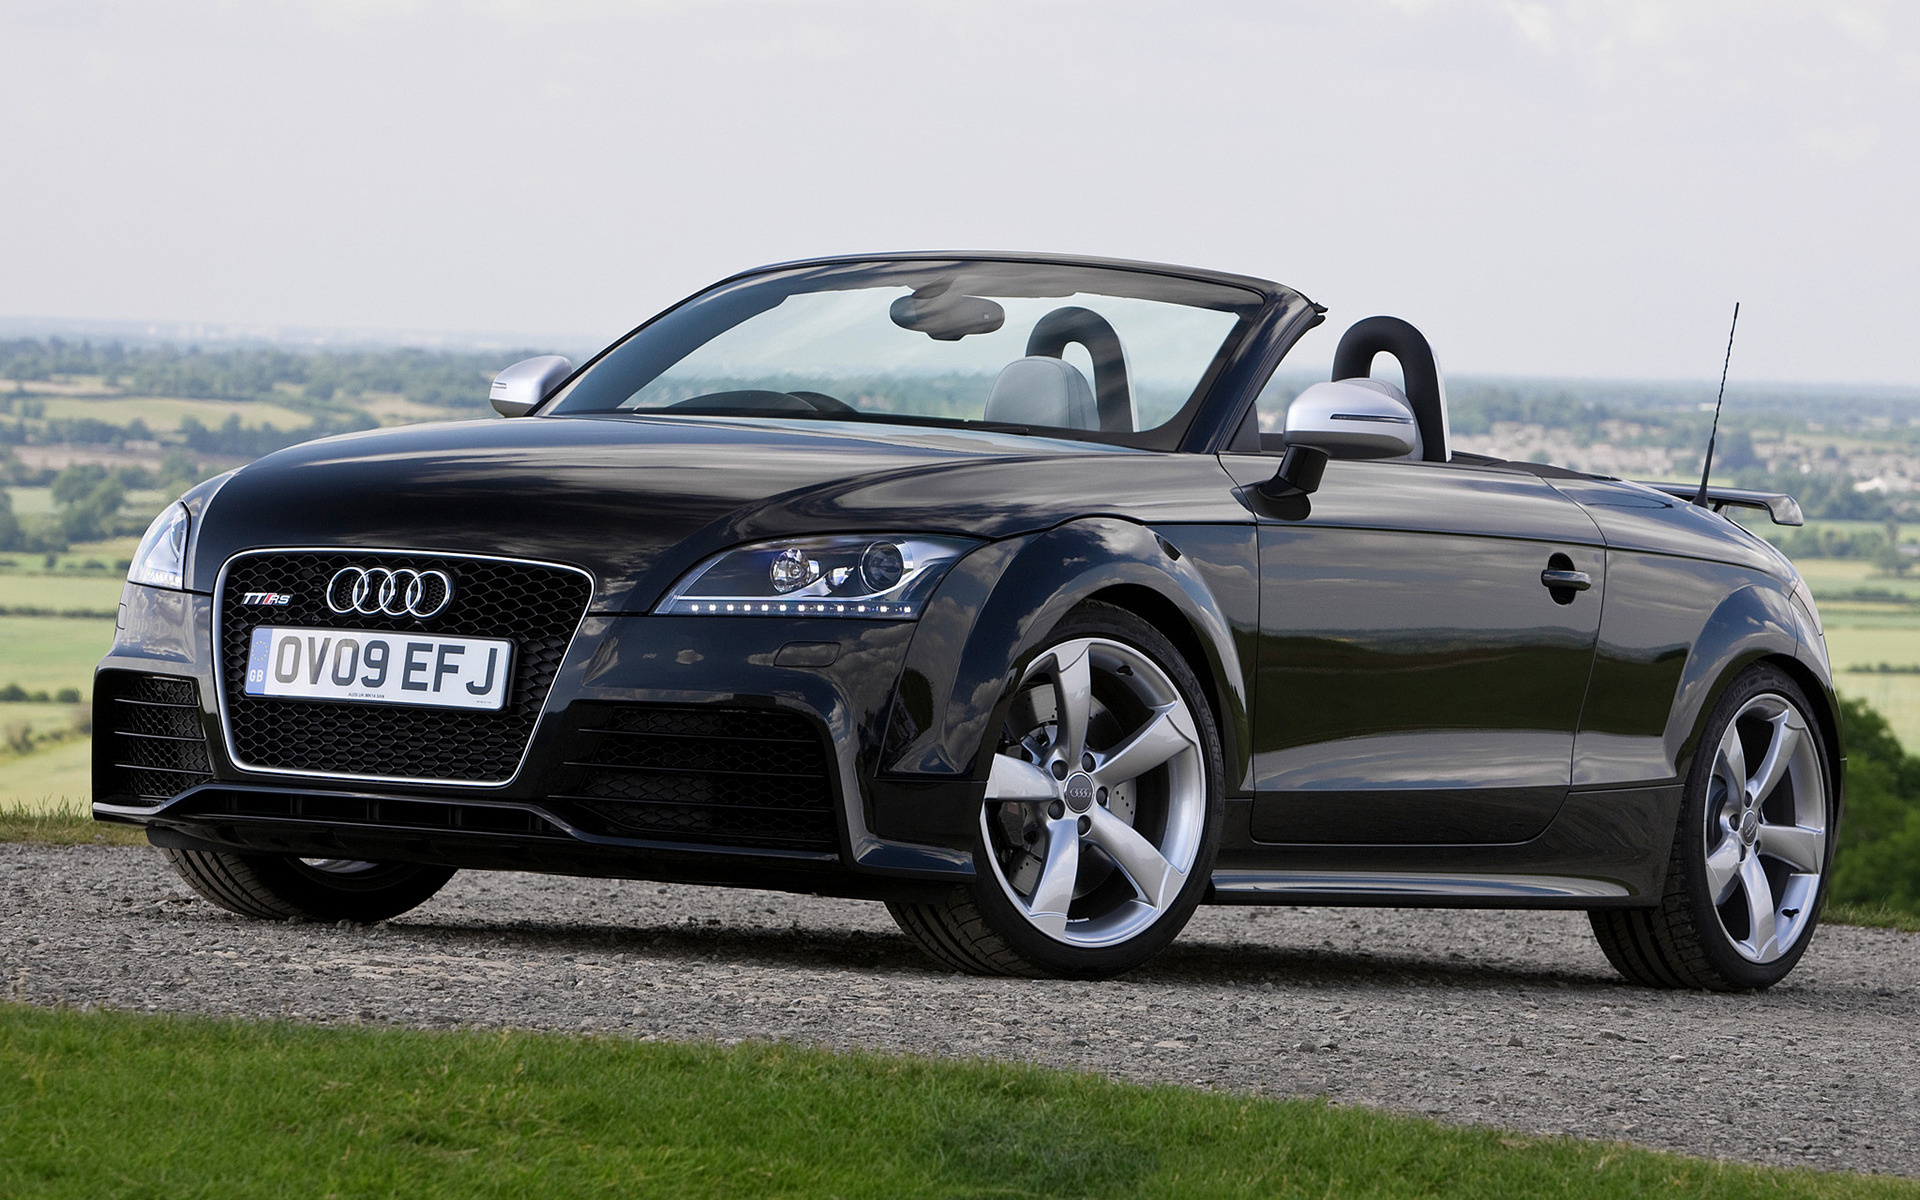 Audi Tt Rs Roadster 2009 2010 Front Links Pictures to pin on Pinterest